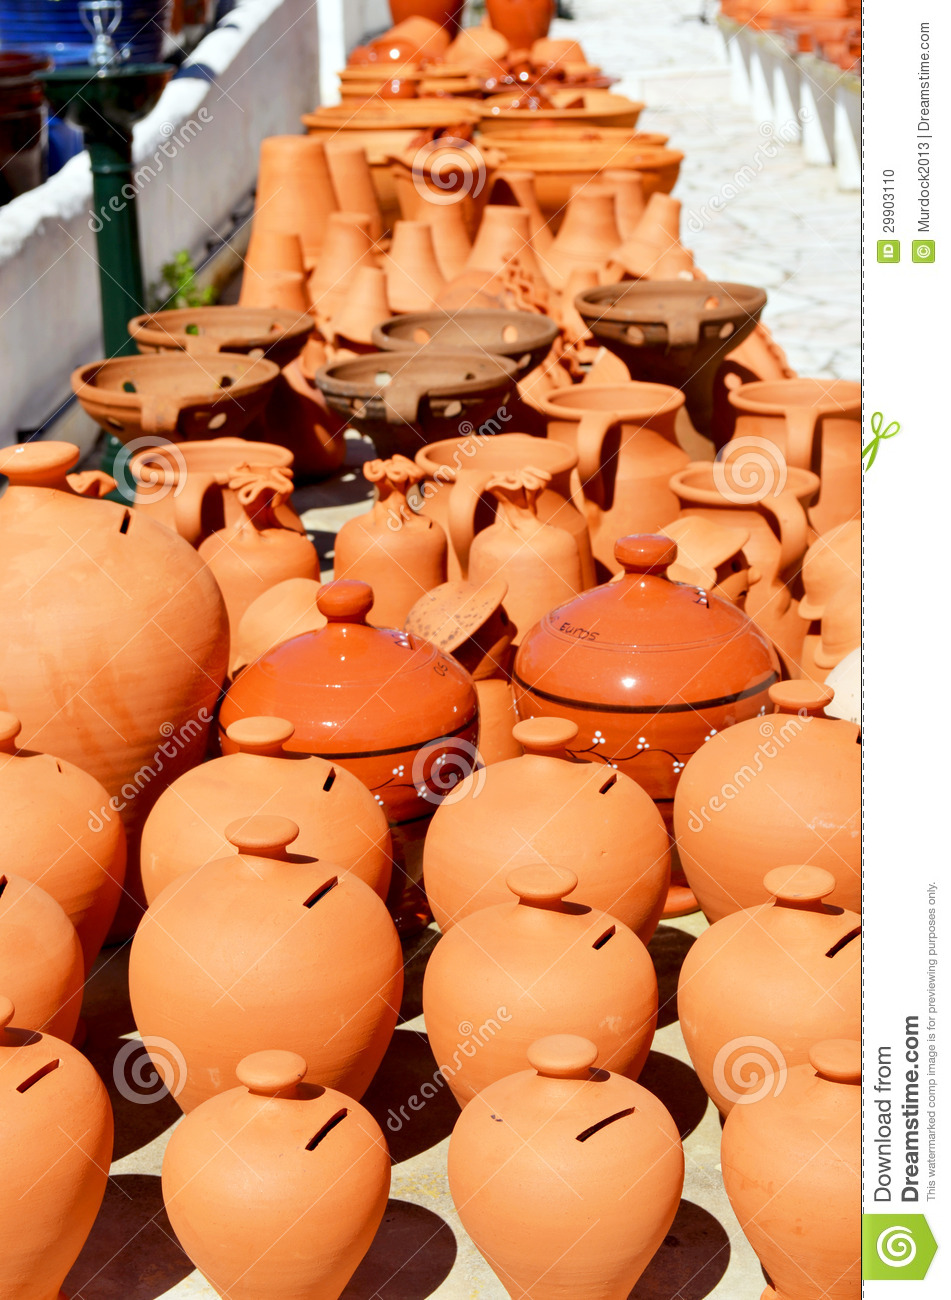 Algarve Terracotta Pots And Vases For Sale Stock Photo Image Of Plant Vases 29903110